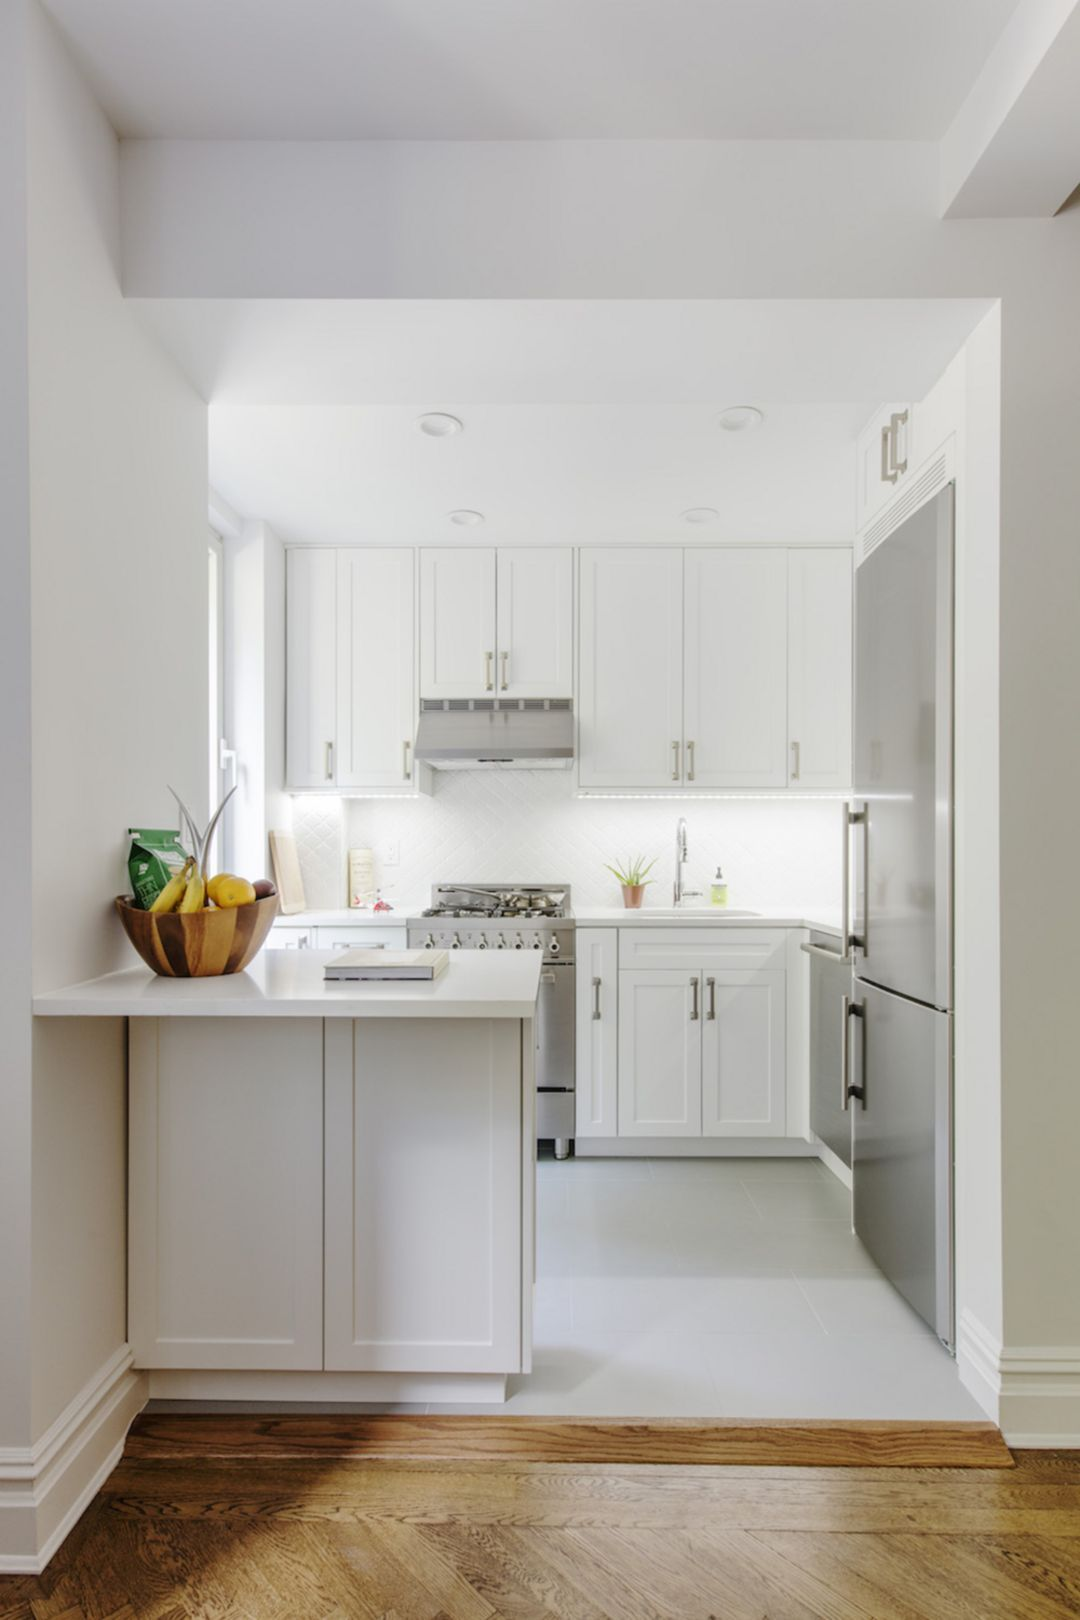 f72592cef6b18effd919057d86b2e2ad - Get Small Space Small House Modern Kitchen Tiles Design Pictures